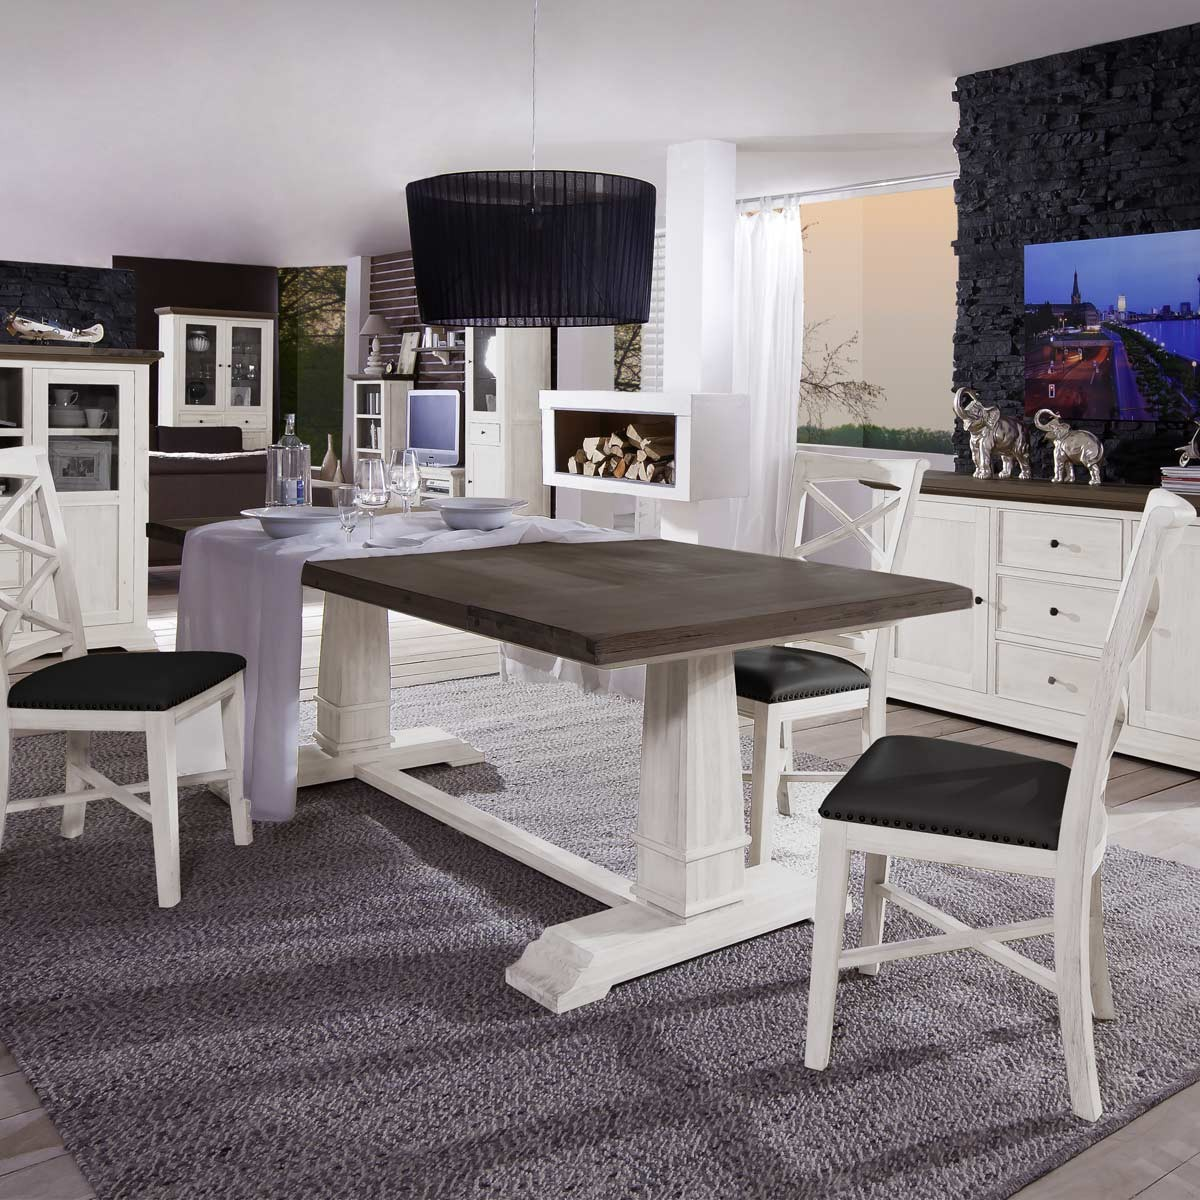 ansteckplatten varberg 2er set akazie massiv weiss kolonial b2b trade. Black Bedroom Furniture Sets. Home Design Ideas